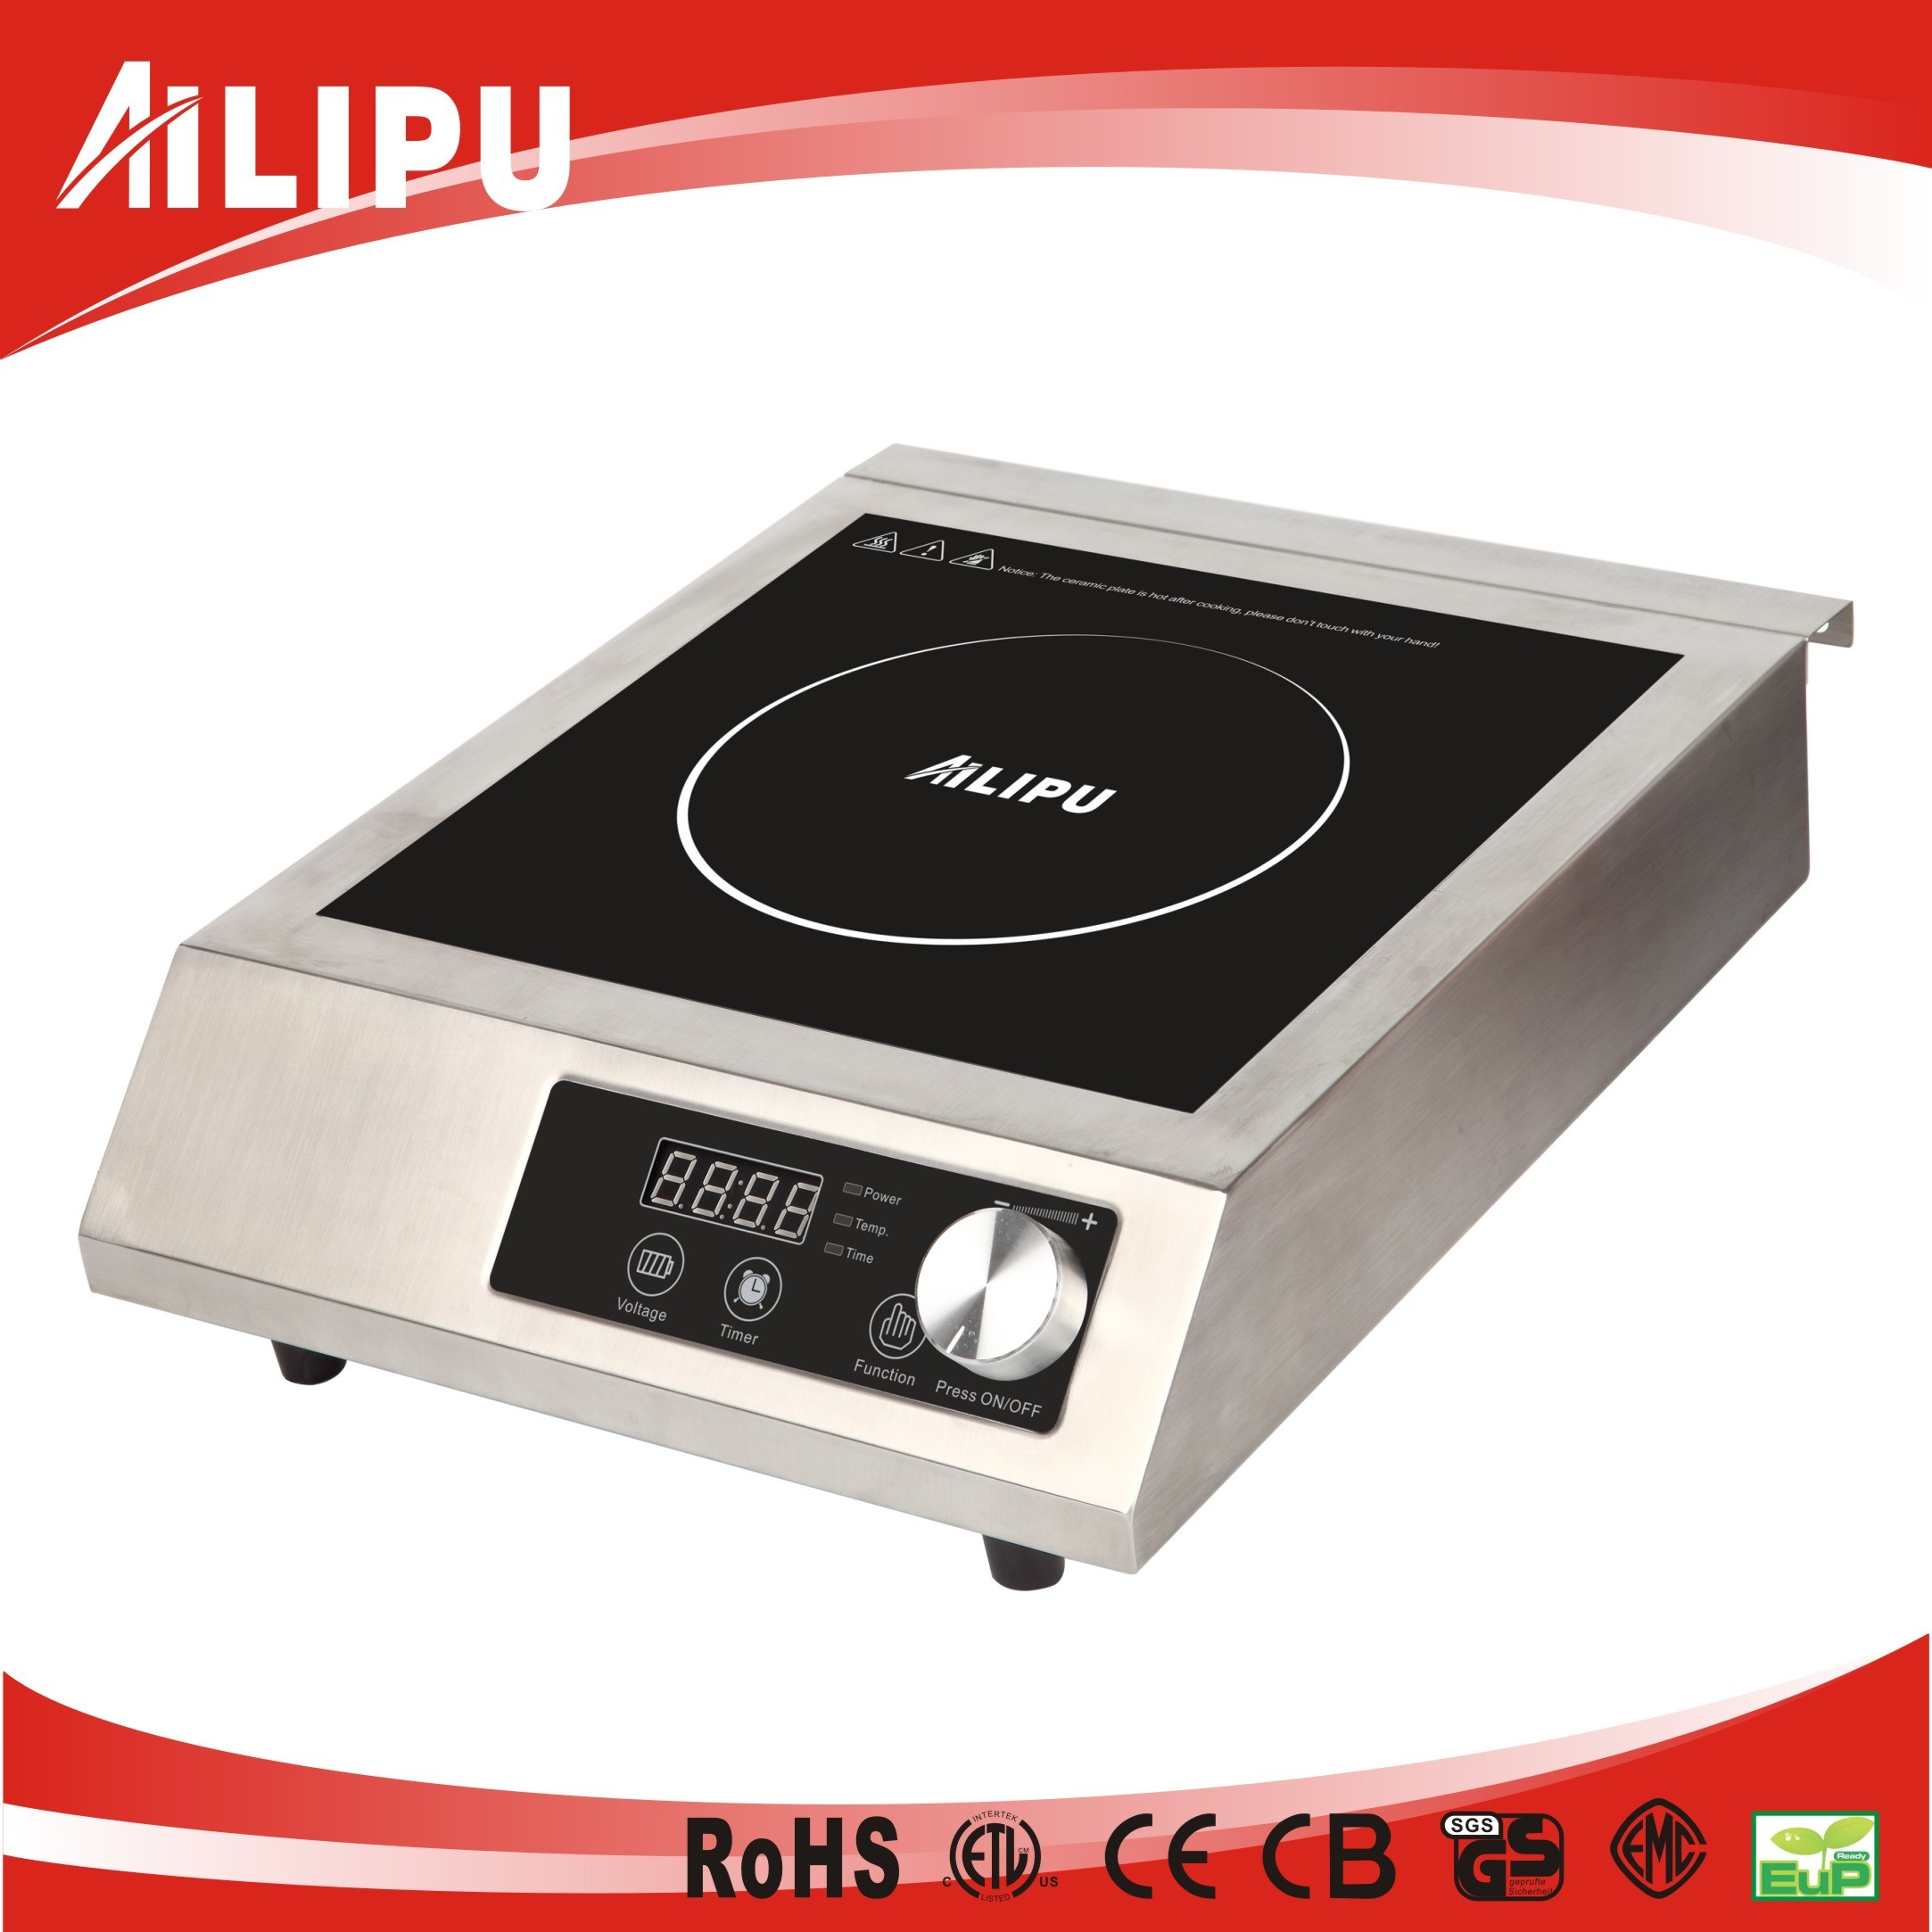 Stainless Steel Commercial CE ETL 120V, 3500W 1800W induction stove for USA Spain Italy Russia